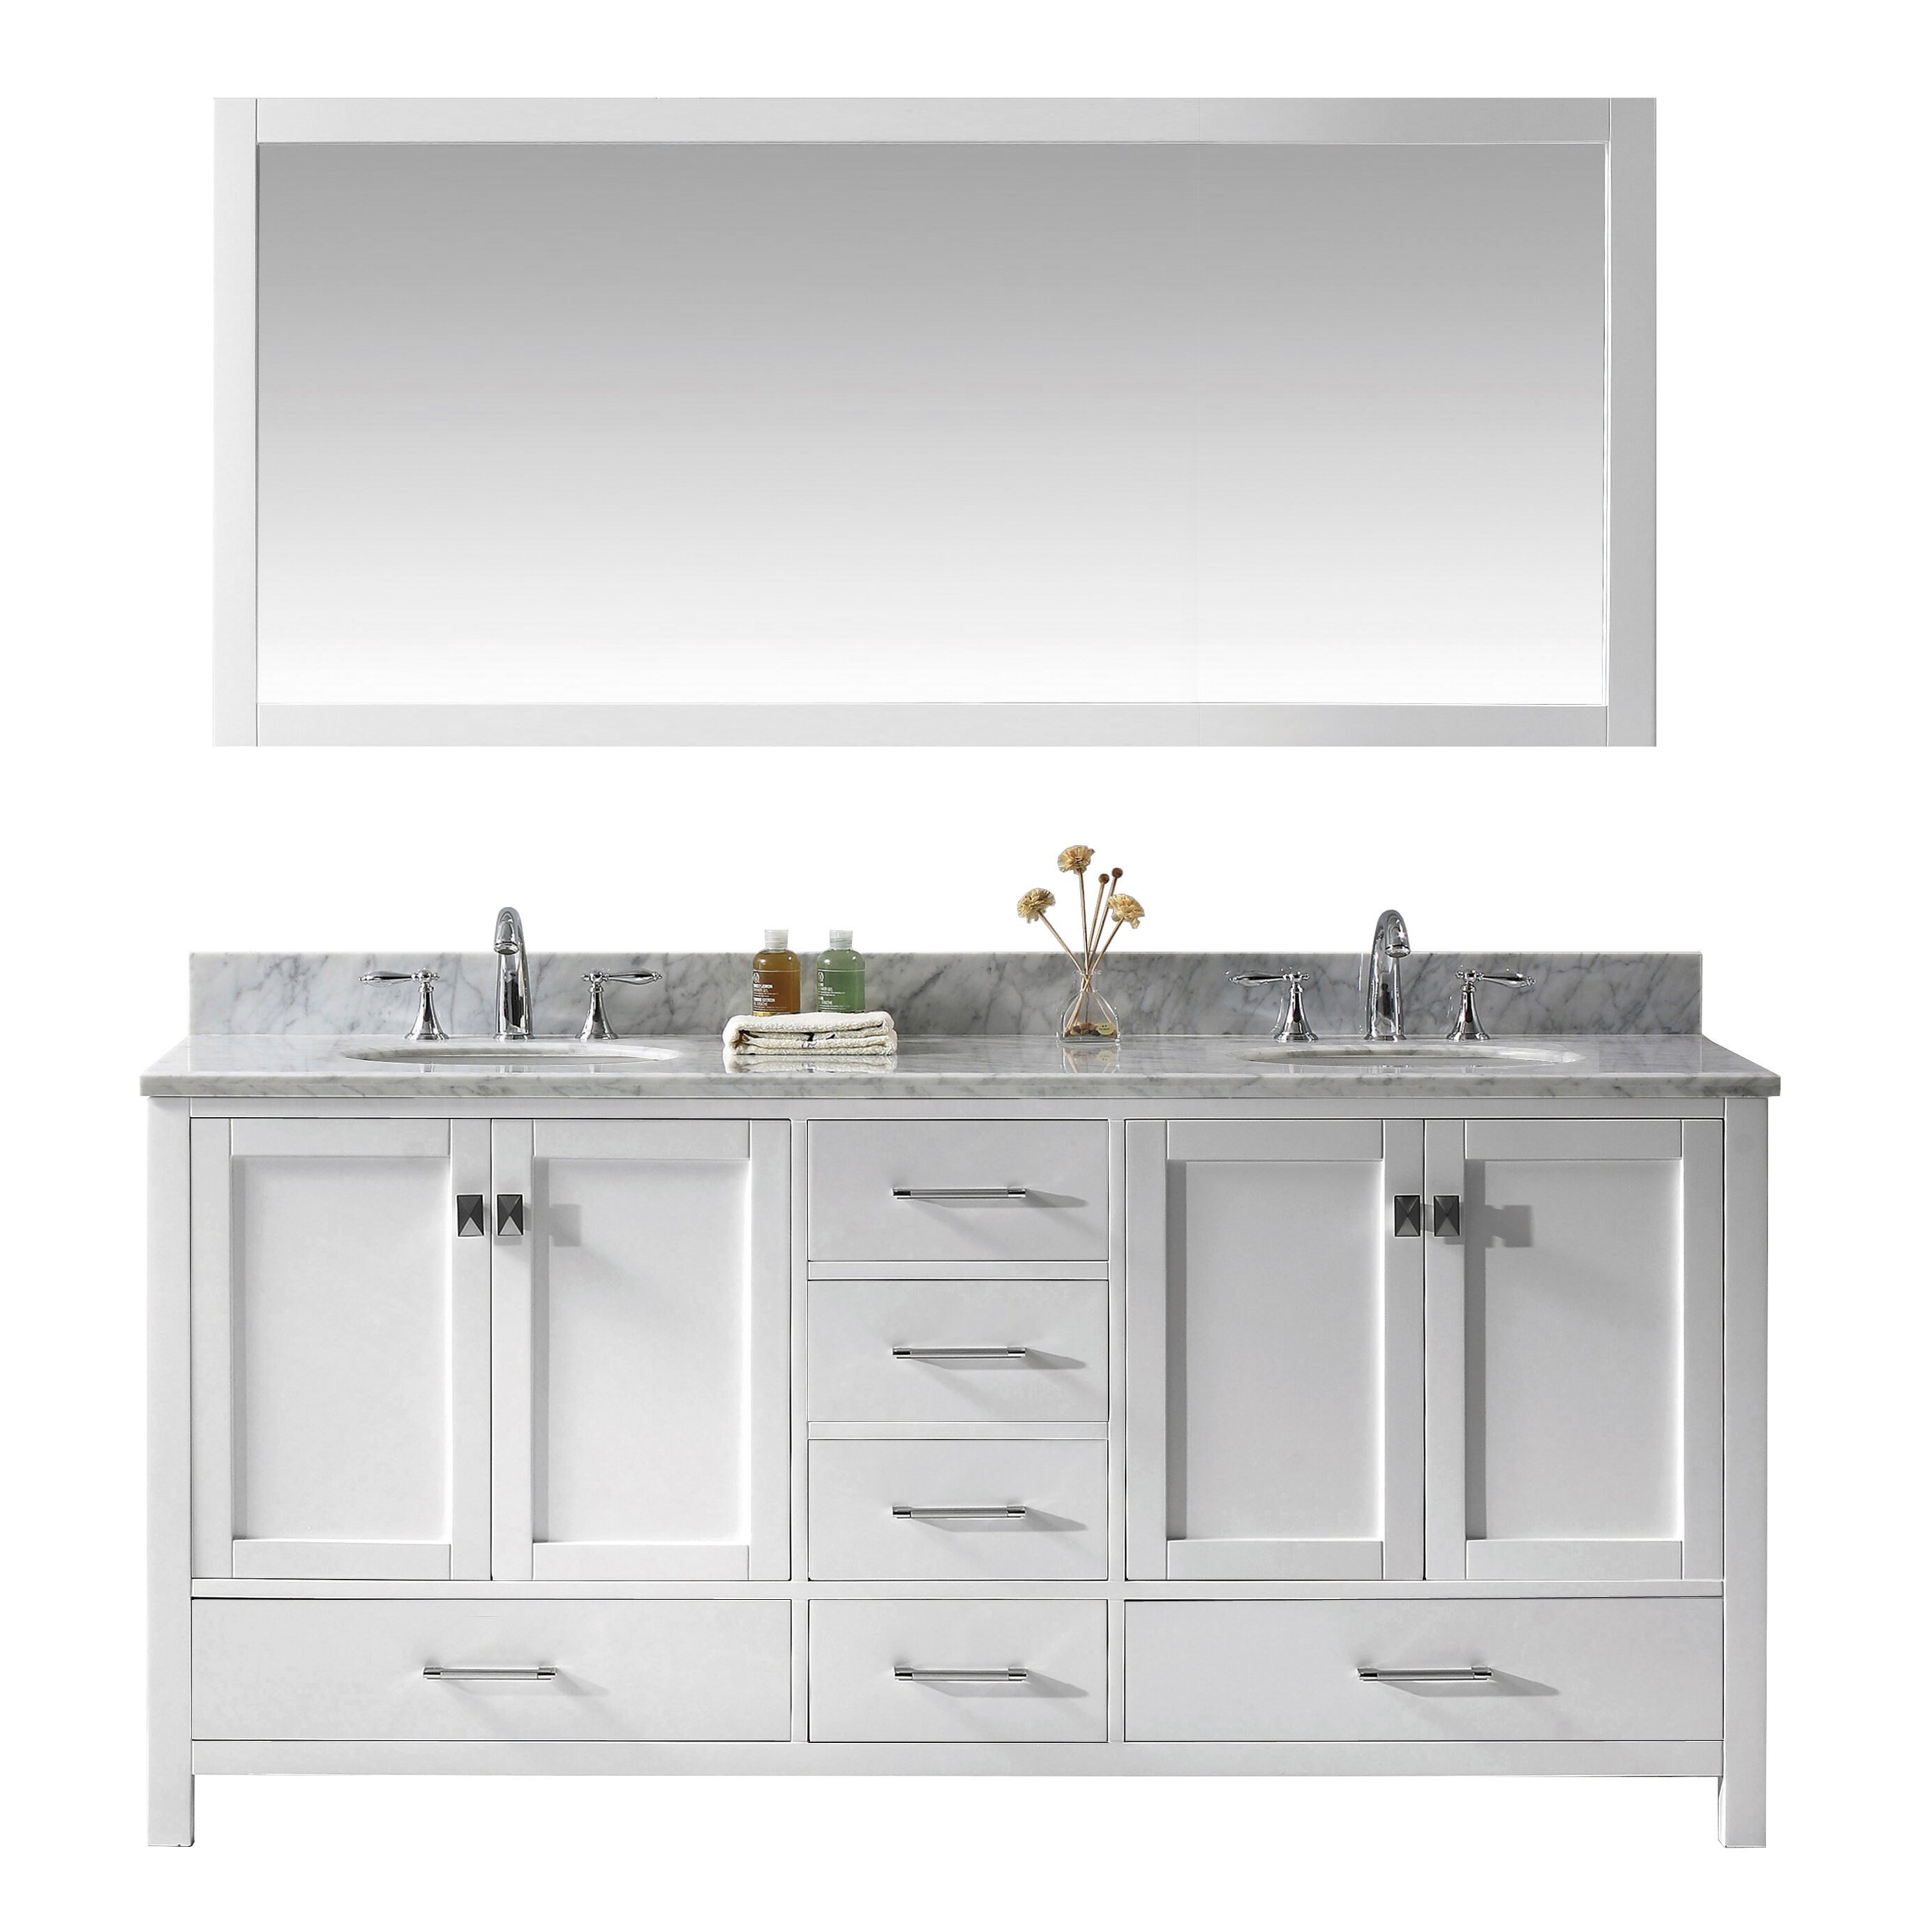 Willa Arlo Interiors Serigne 72 Double Bathroom Vanity Set With Mirror Reviews Wayfair